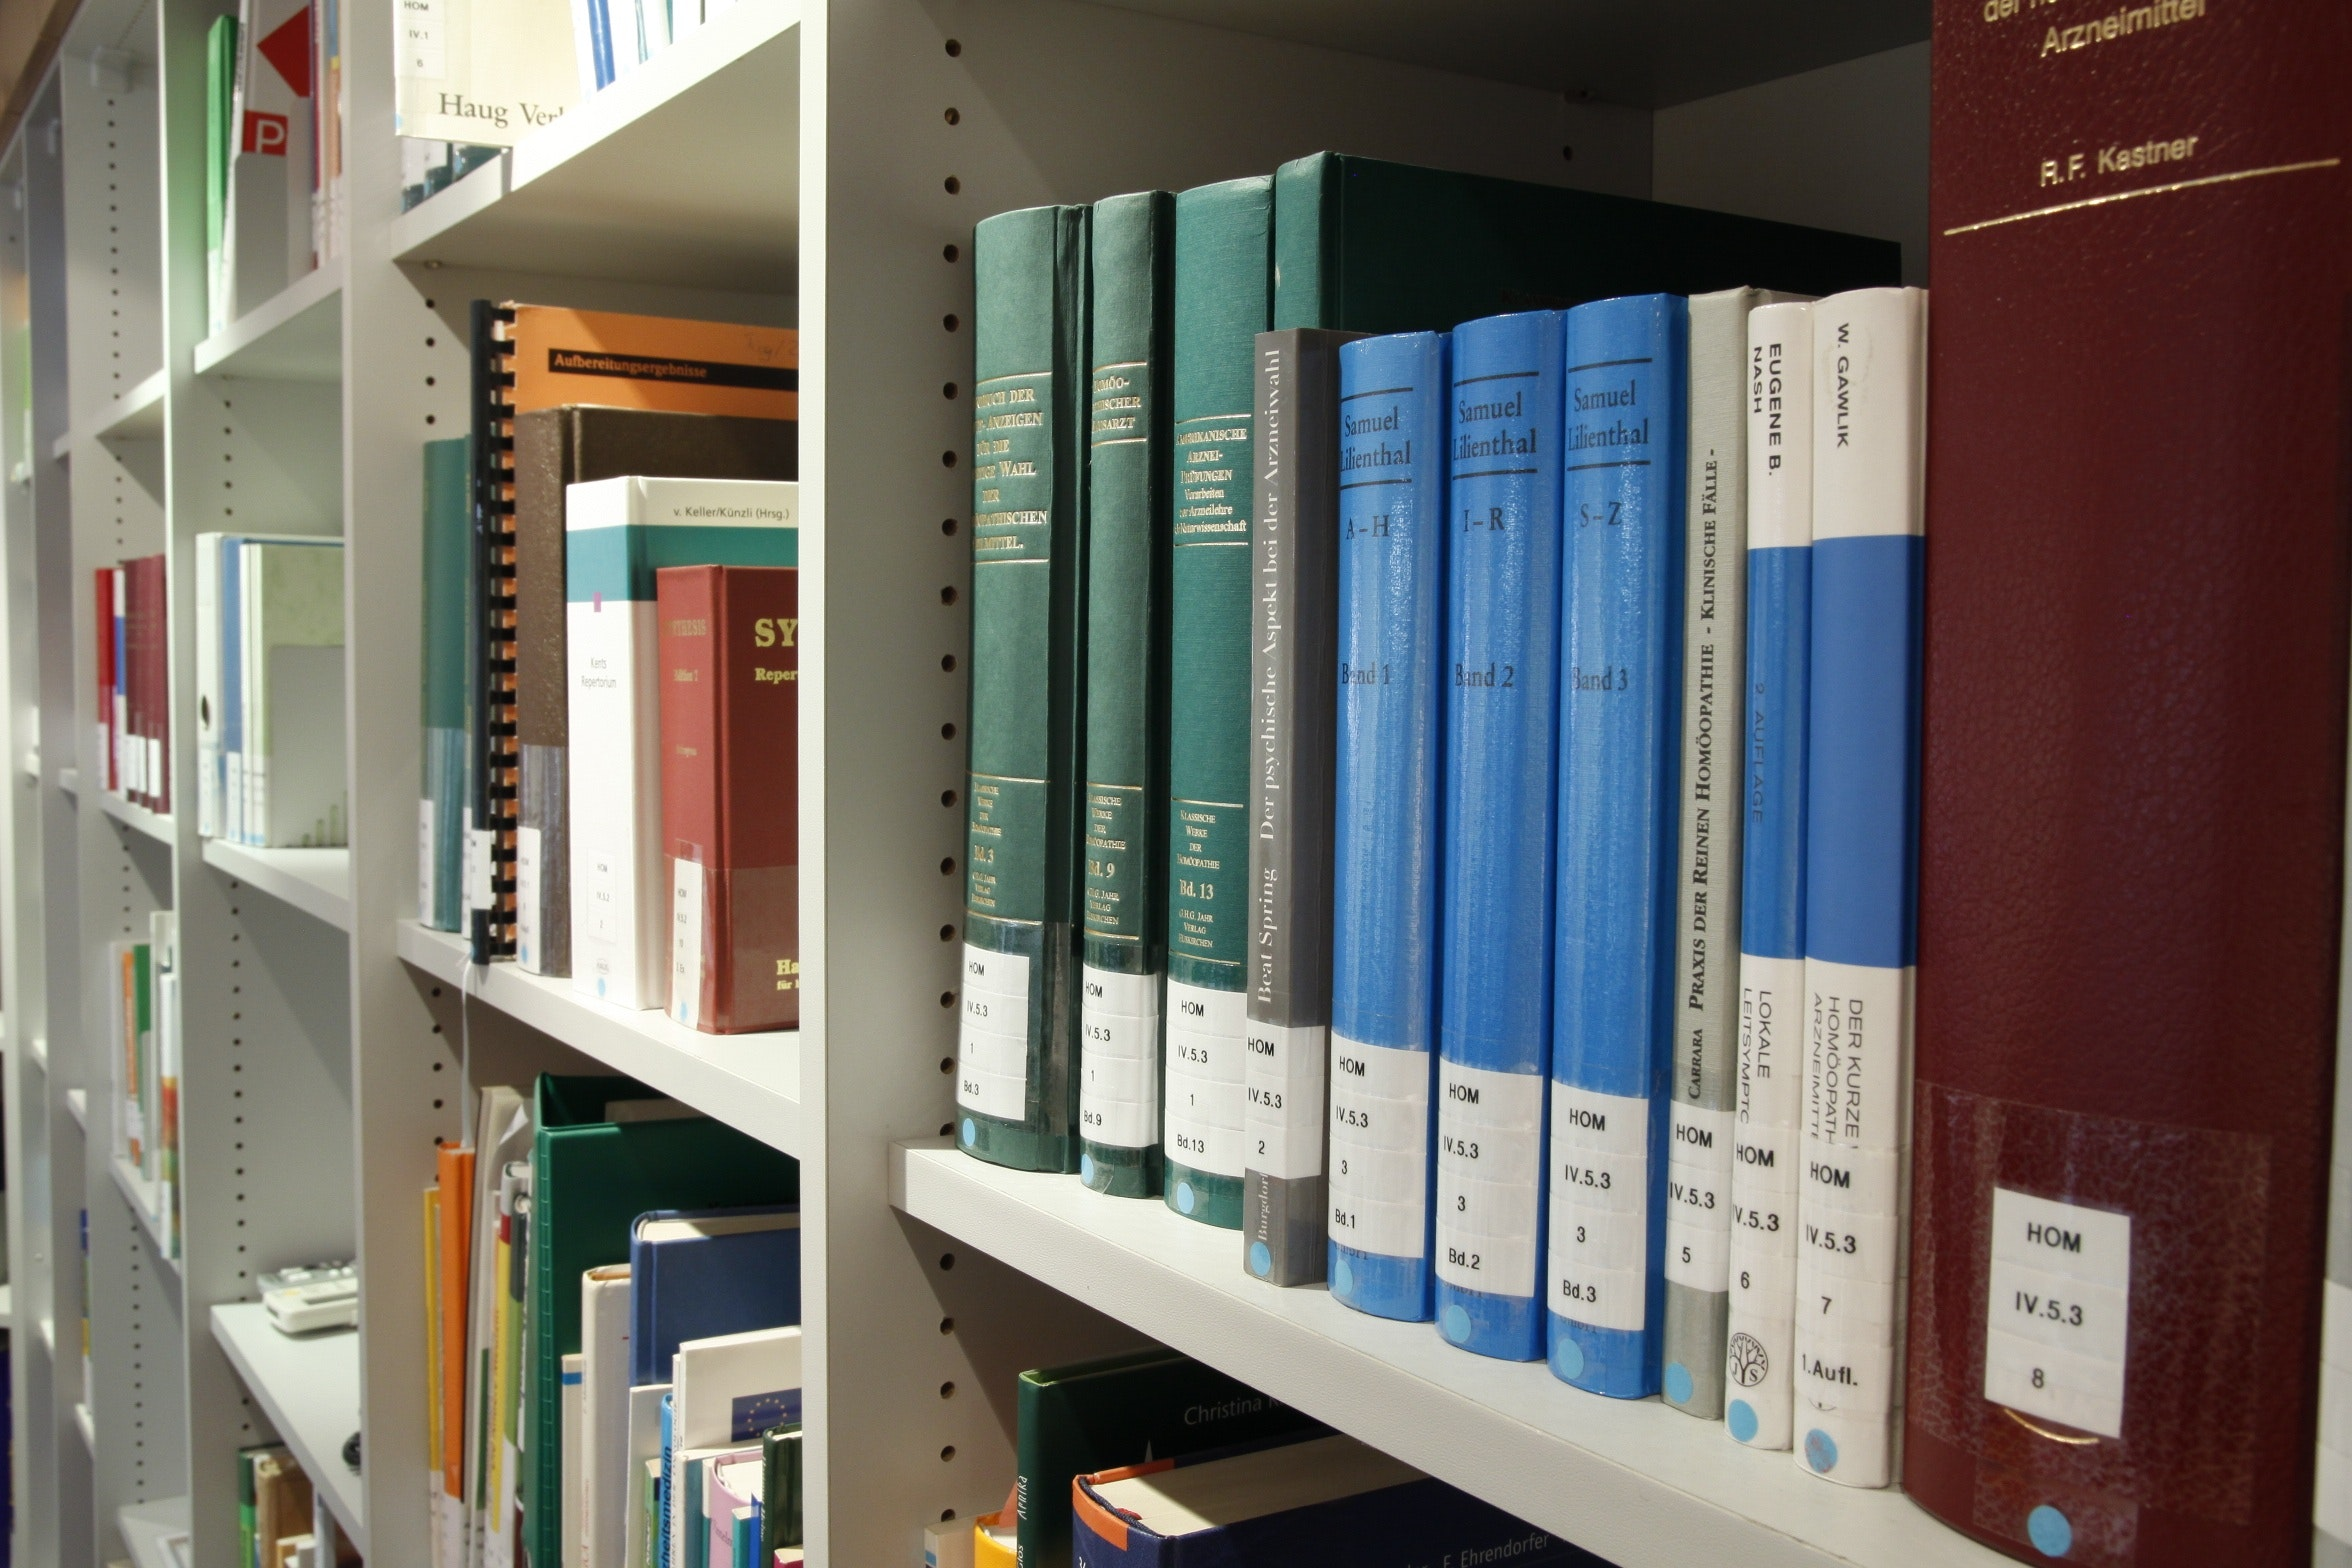 Books on Shelf in Library, Book, Library, Text, Study, HQ Photo